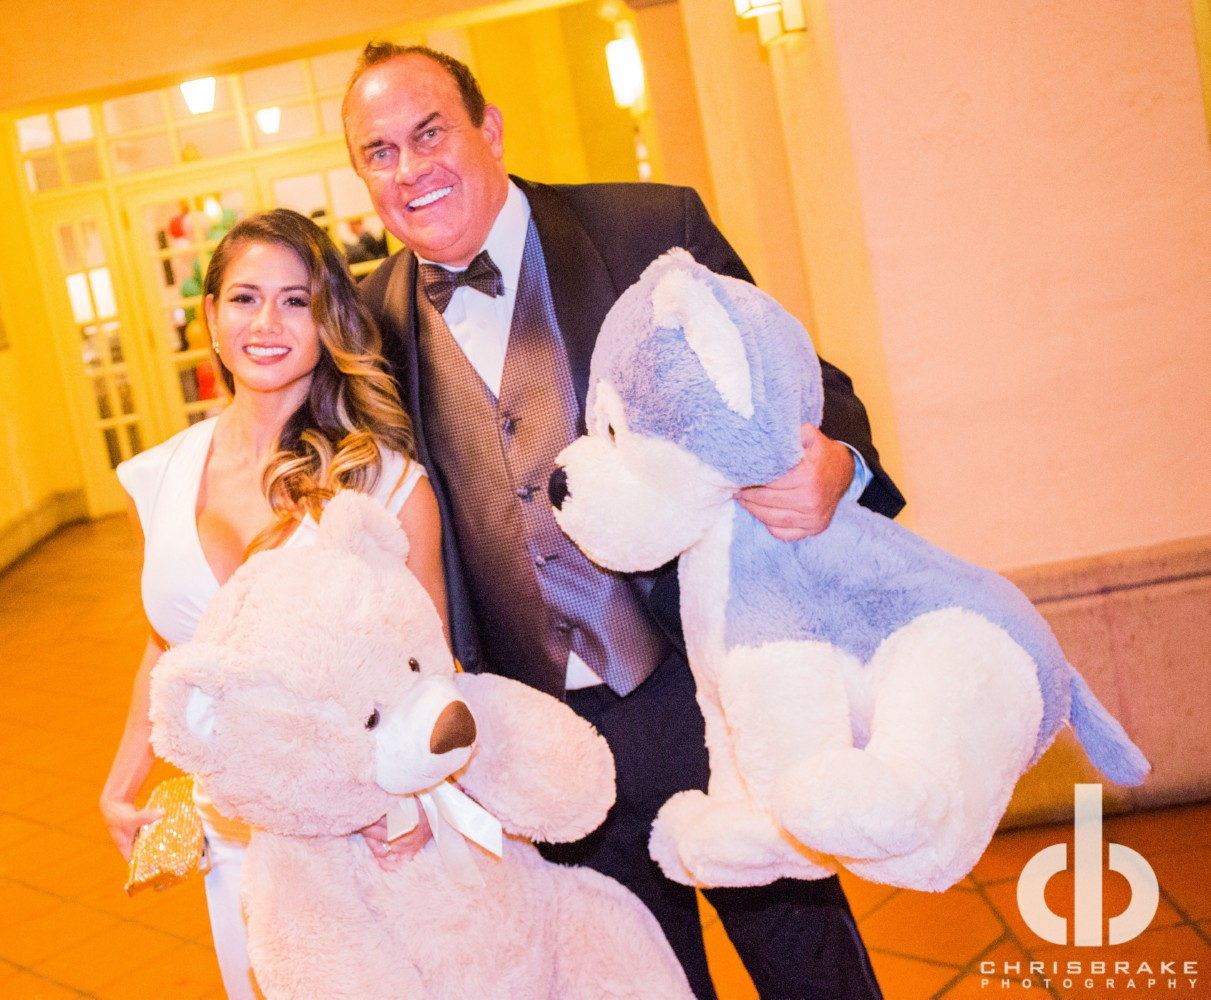 Chris_Brake_Photography_2016_Teddy_Ball - 187.jpg